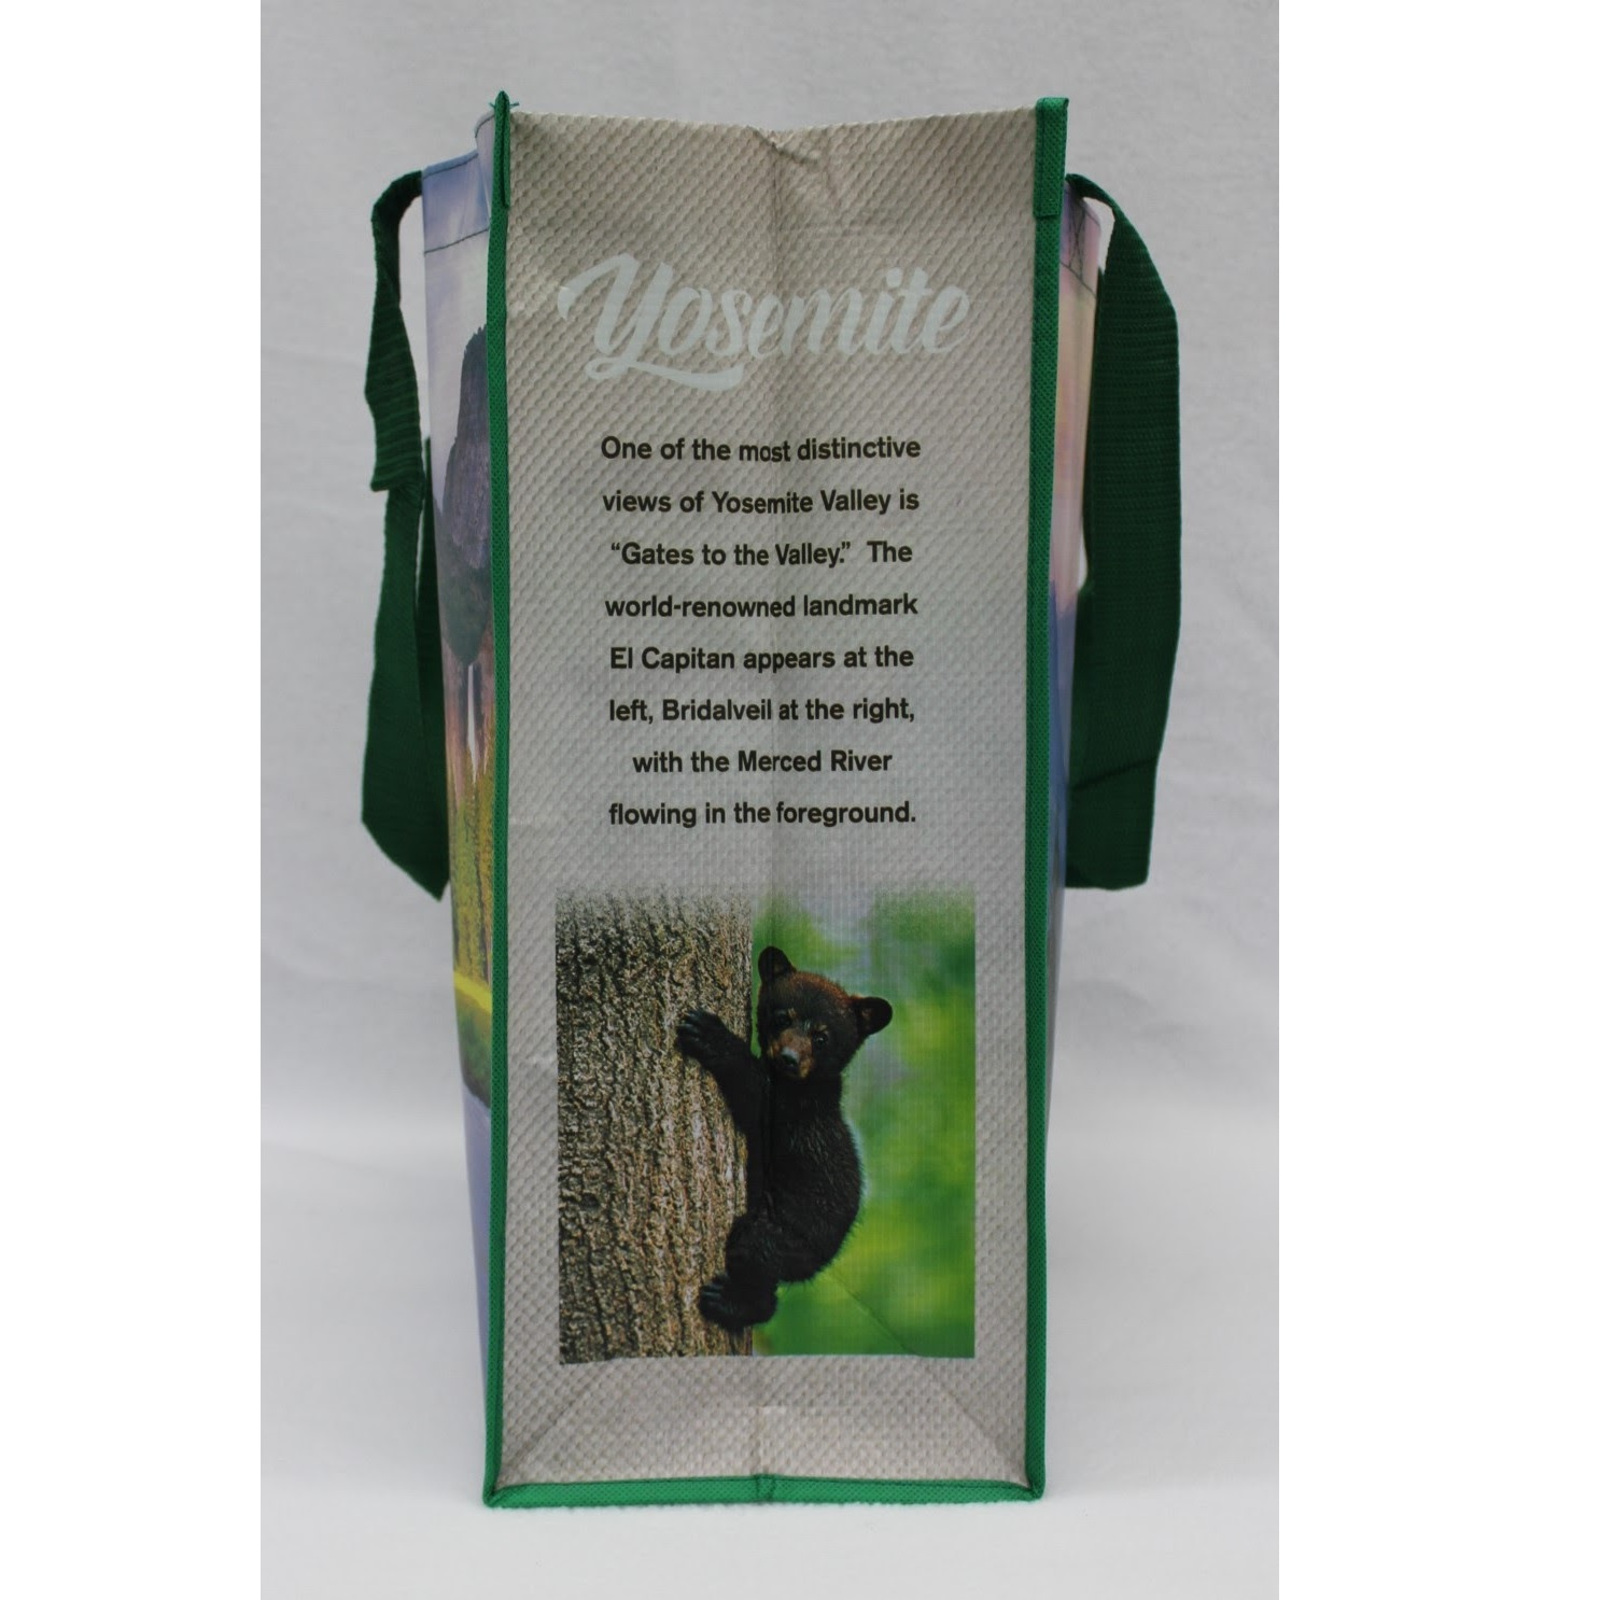 Yosemite Reusable Shopping Bag Yosemite Online Store